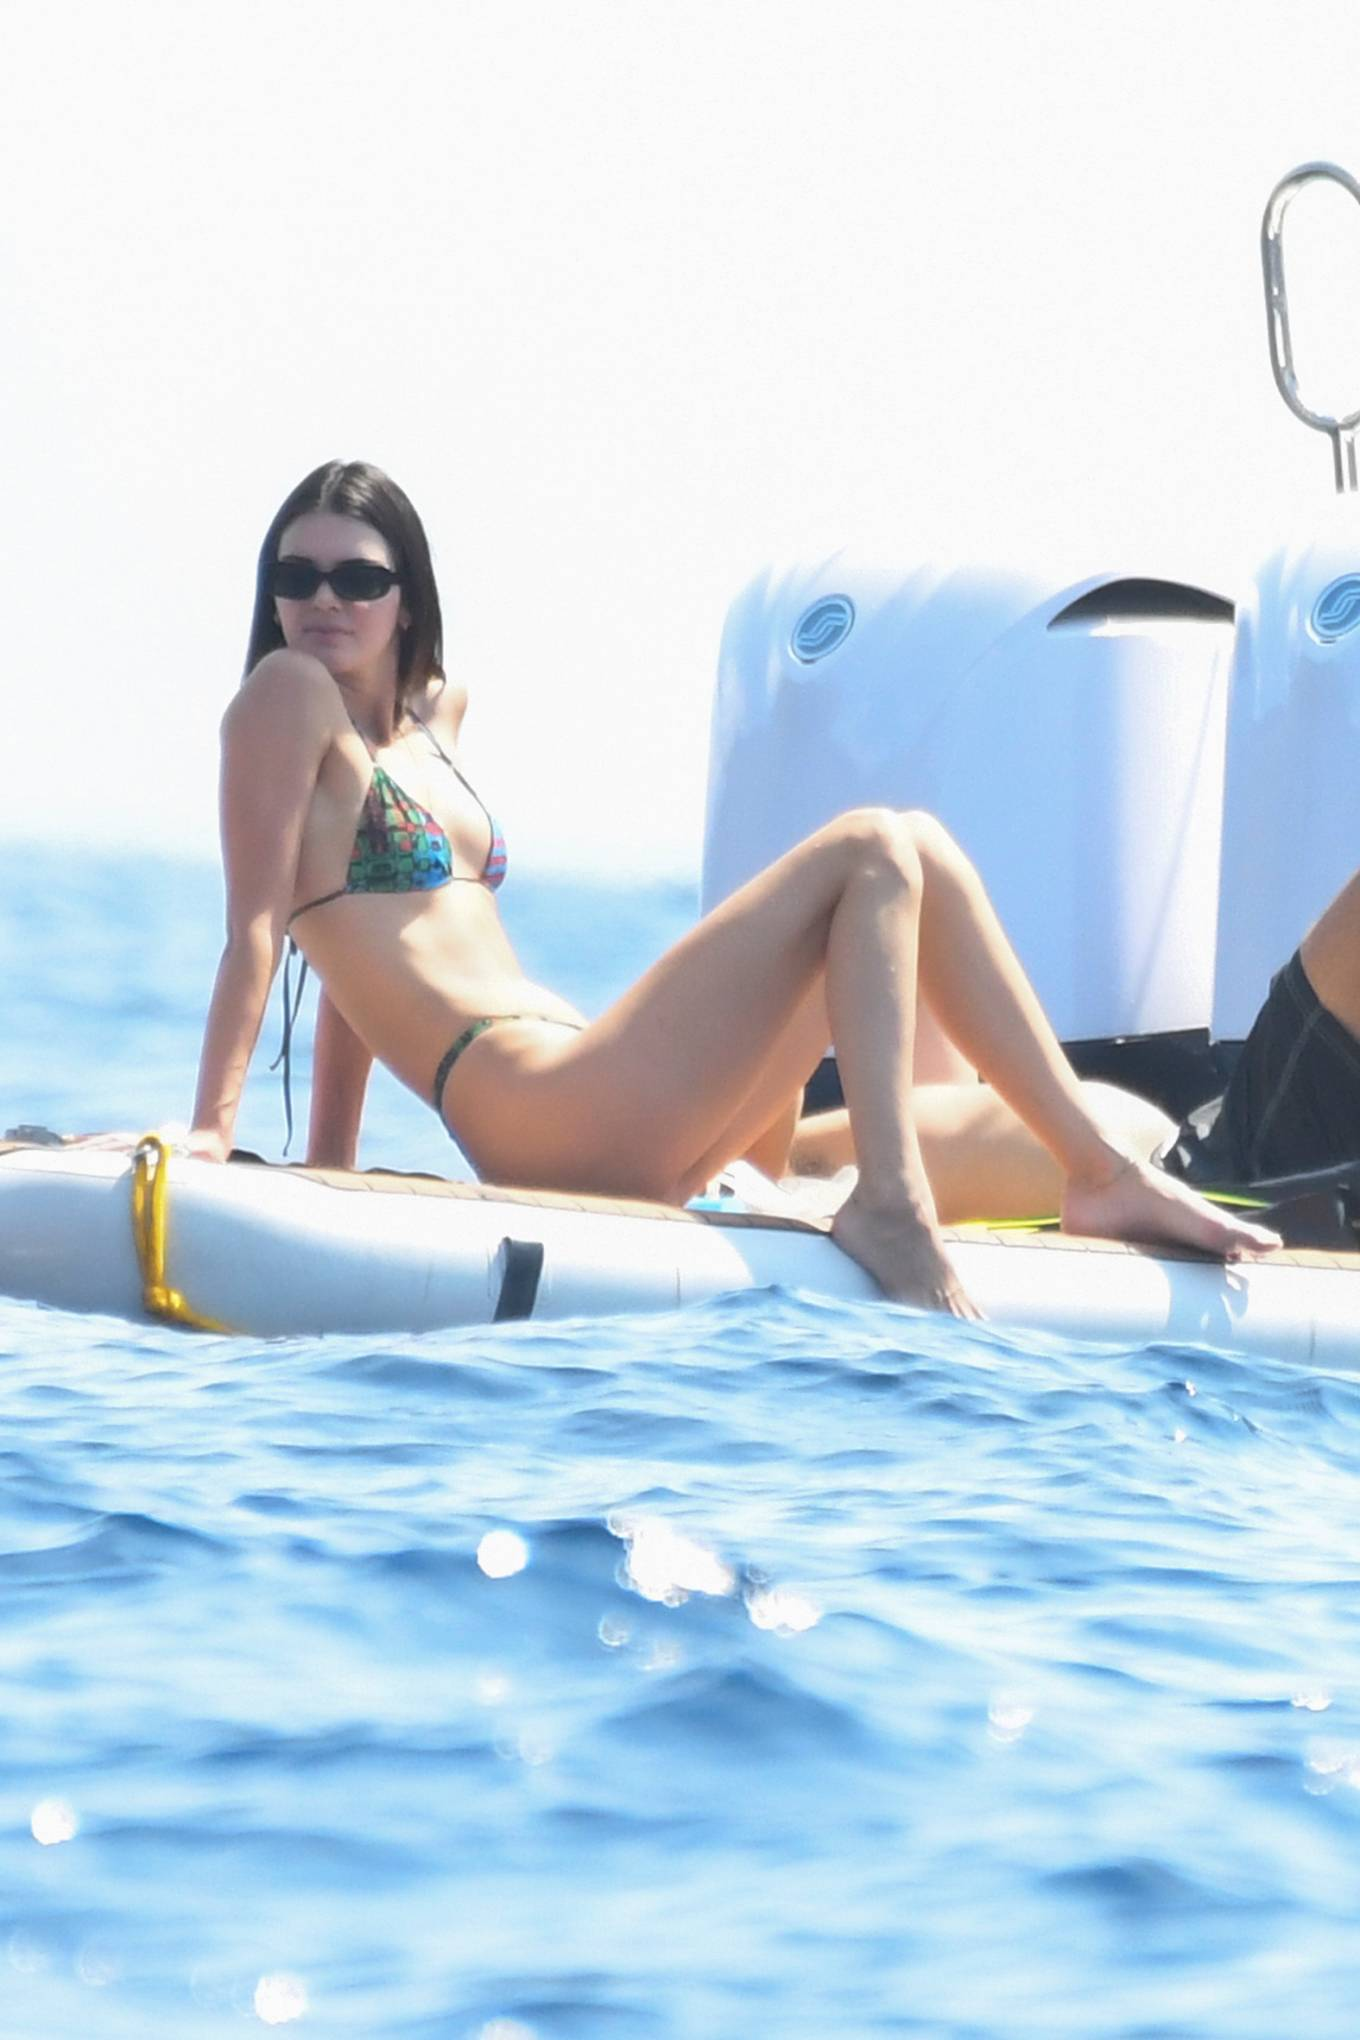 Kendall Jenner, black Gentle Monster sunglasses, showcase, patterned print, tiny, straps, deep neck, triangle, flat stomach, straps tied at the shoulder, halter neck, figure hugging, spaghetti straps. Kendall Jenner wearing a figure hugging plunging bikini top with a halter neck and two ties at the shoulder